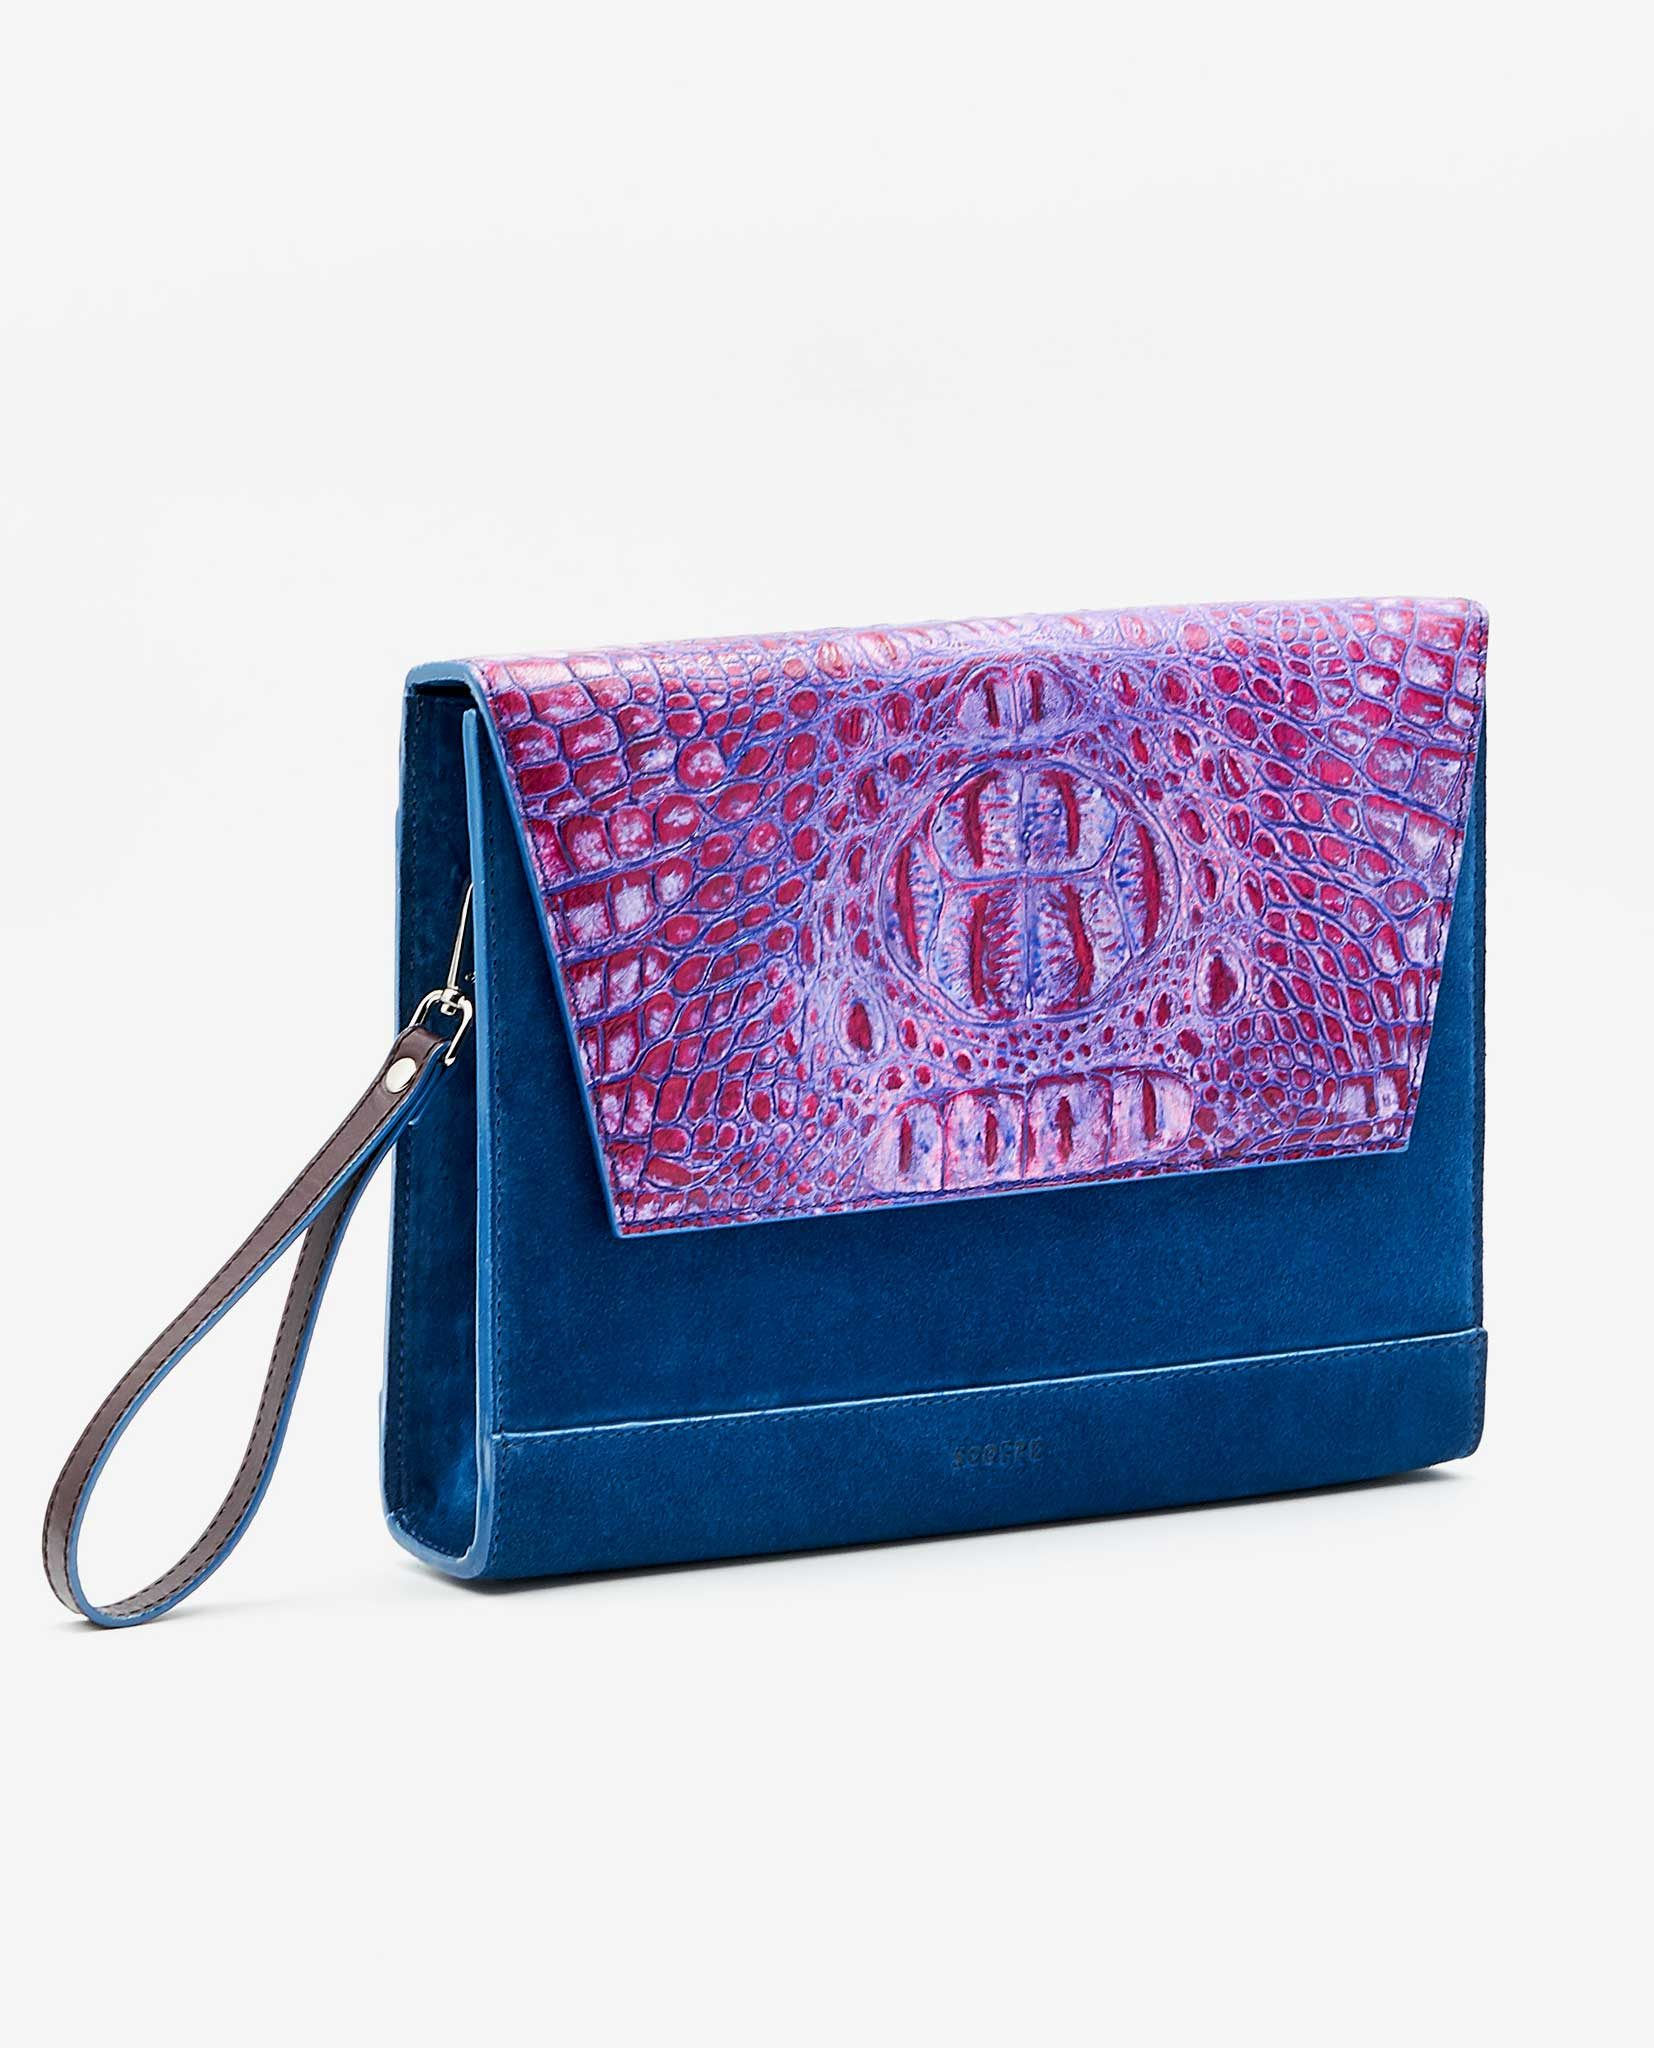 SOOFRE Berlin unique Clutch croco purple lilac sapphire blue